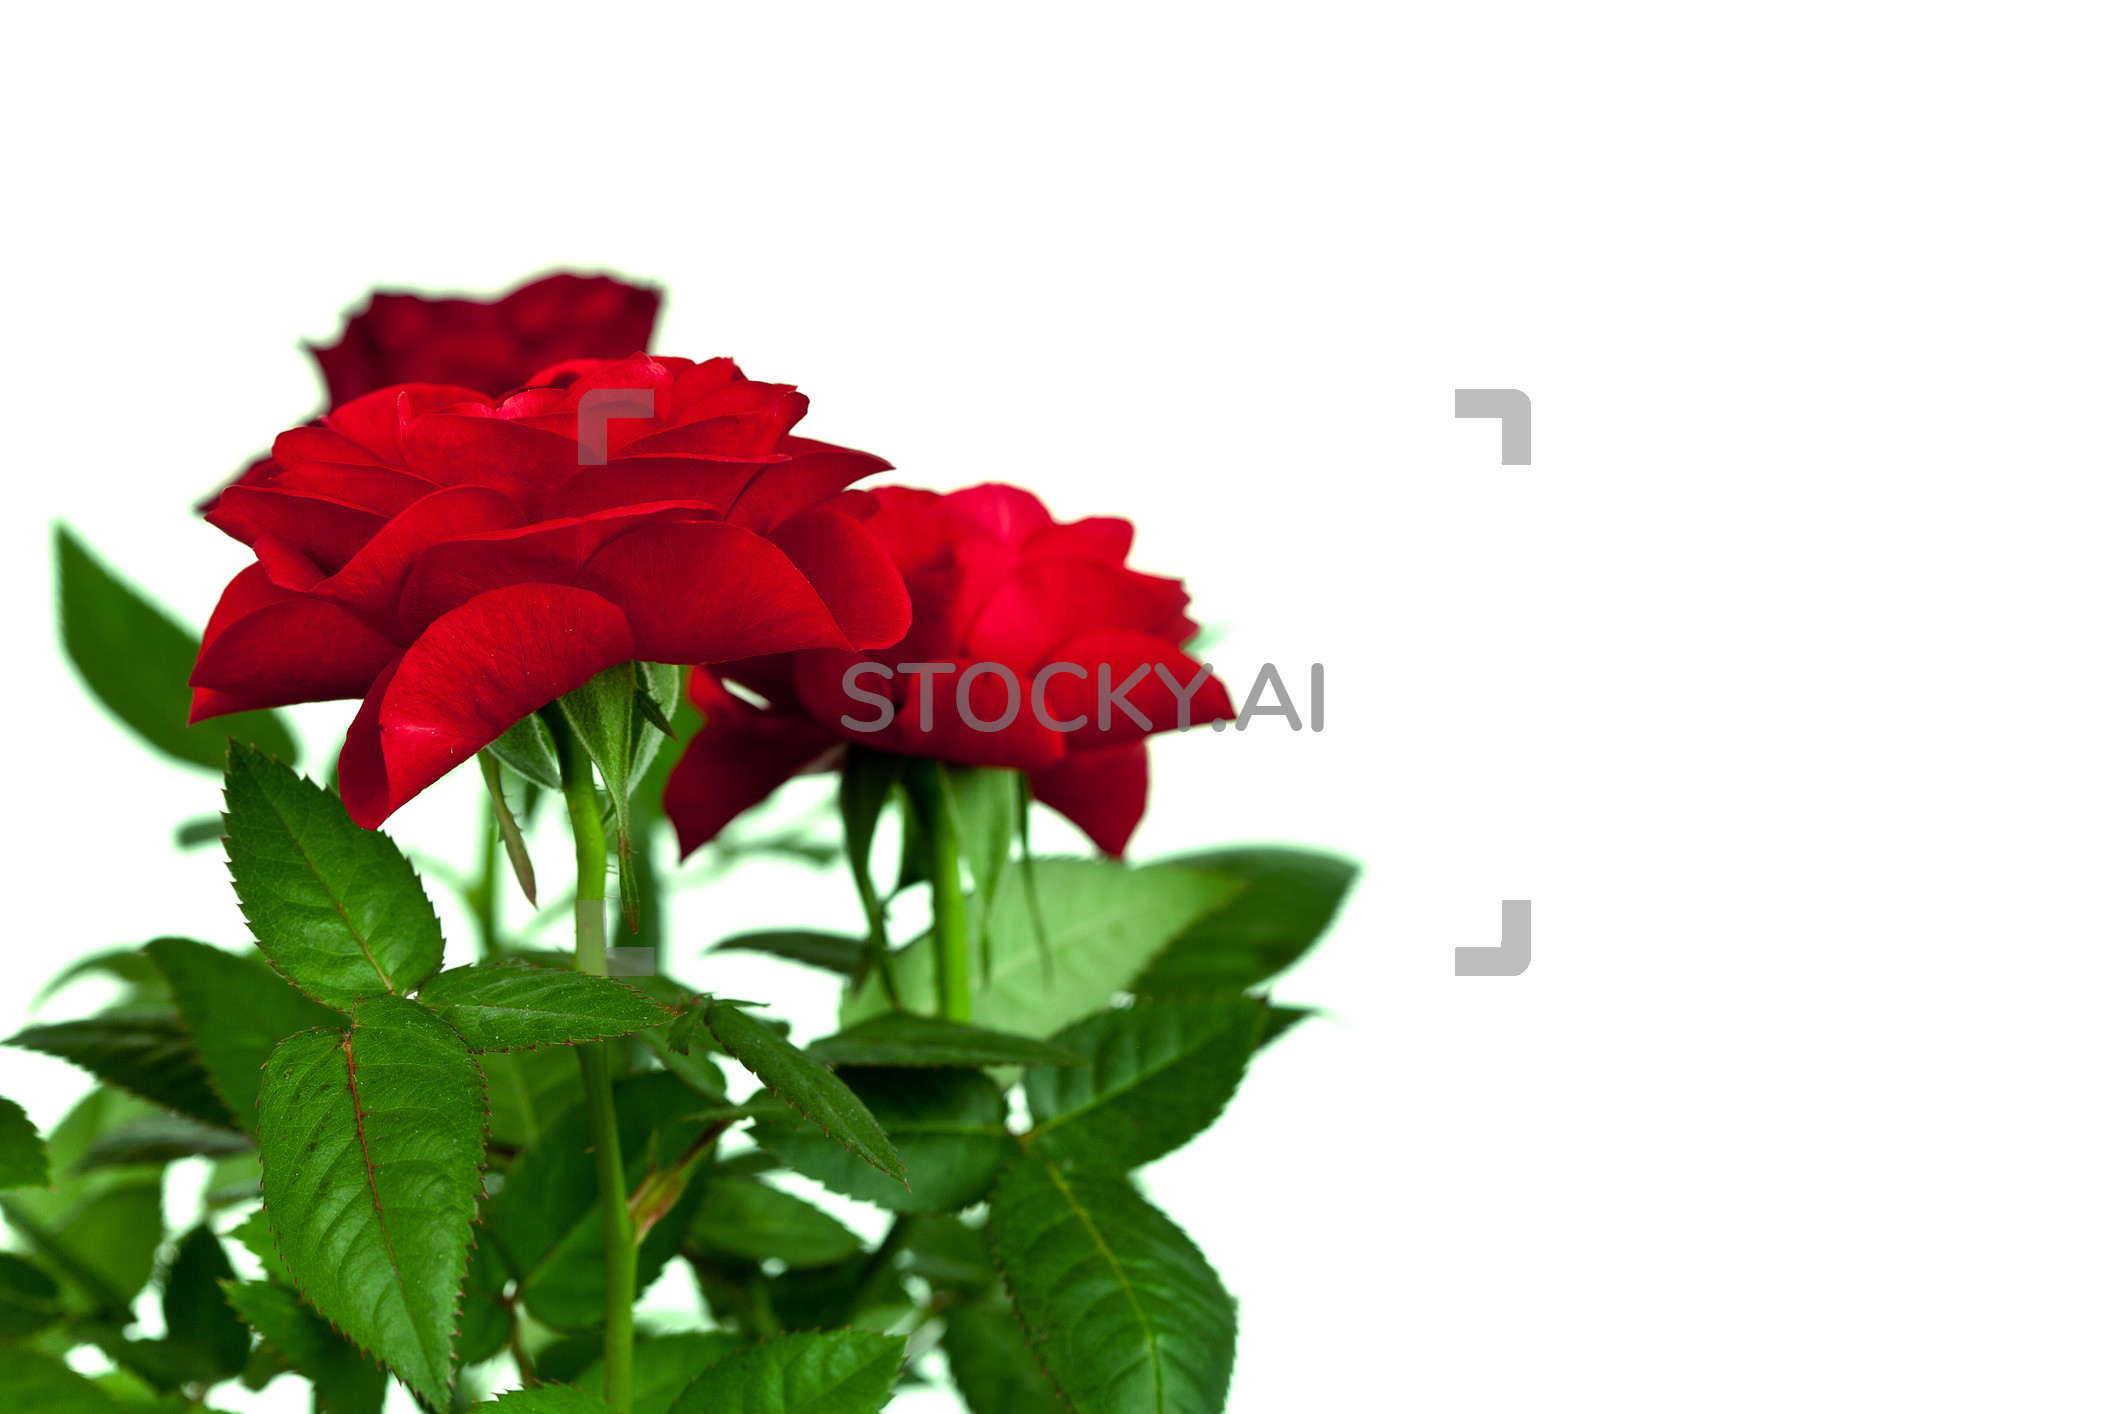 2121x1414 Image of Red roses